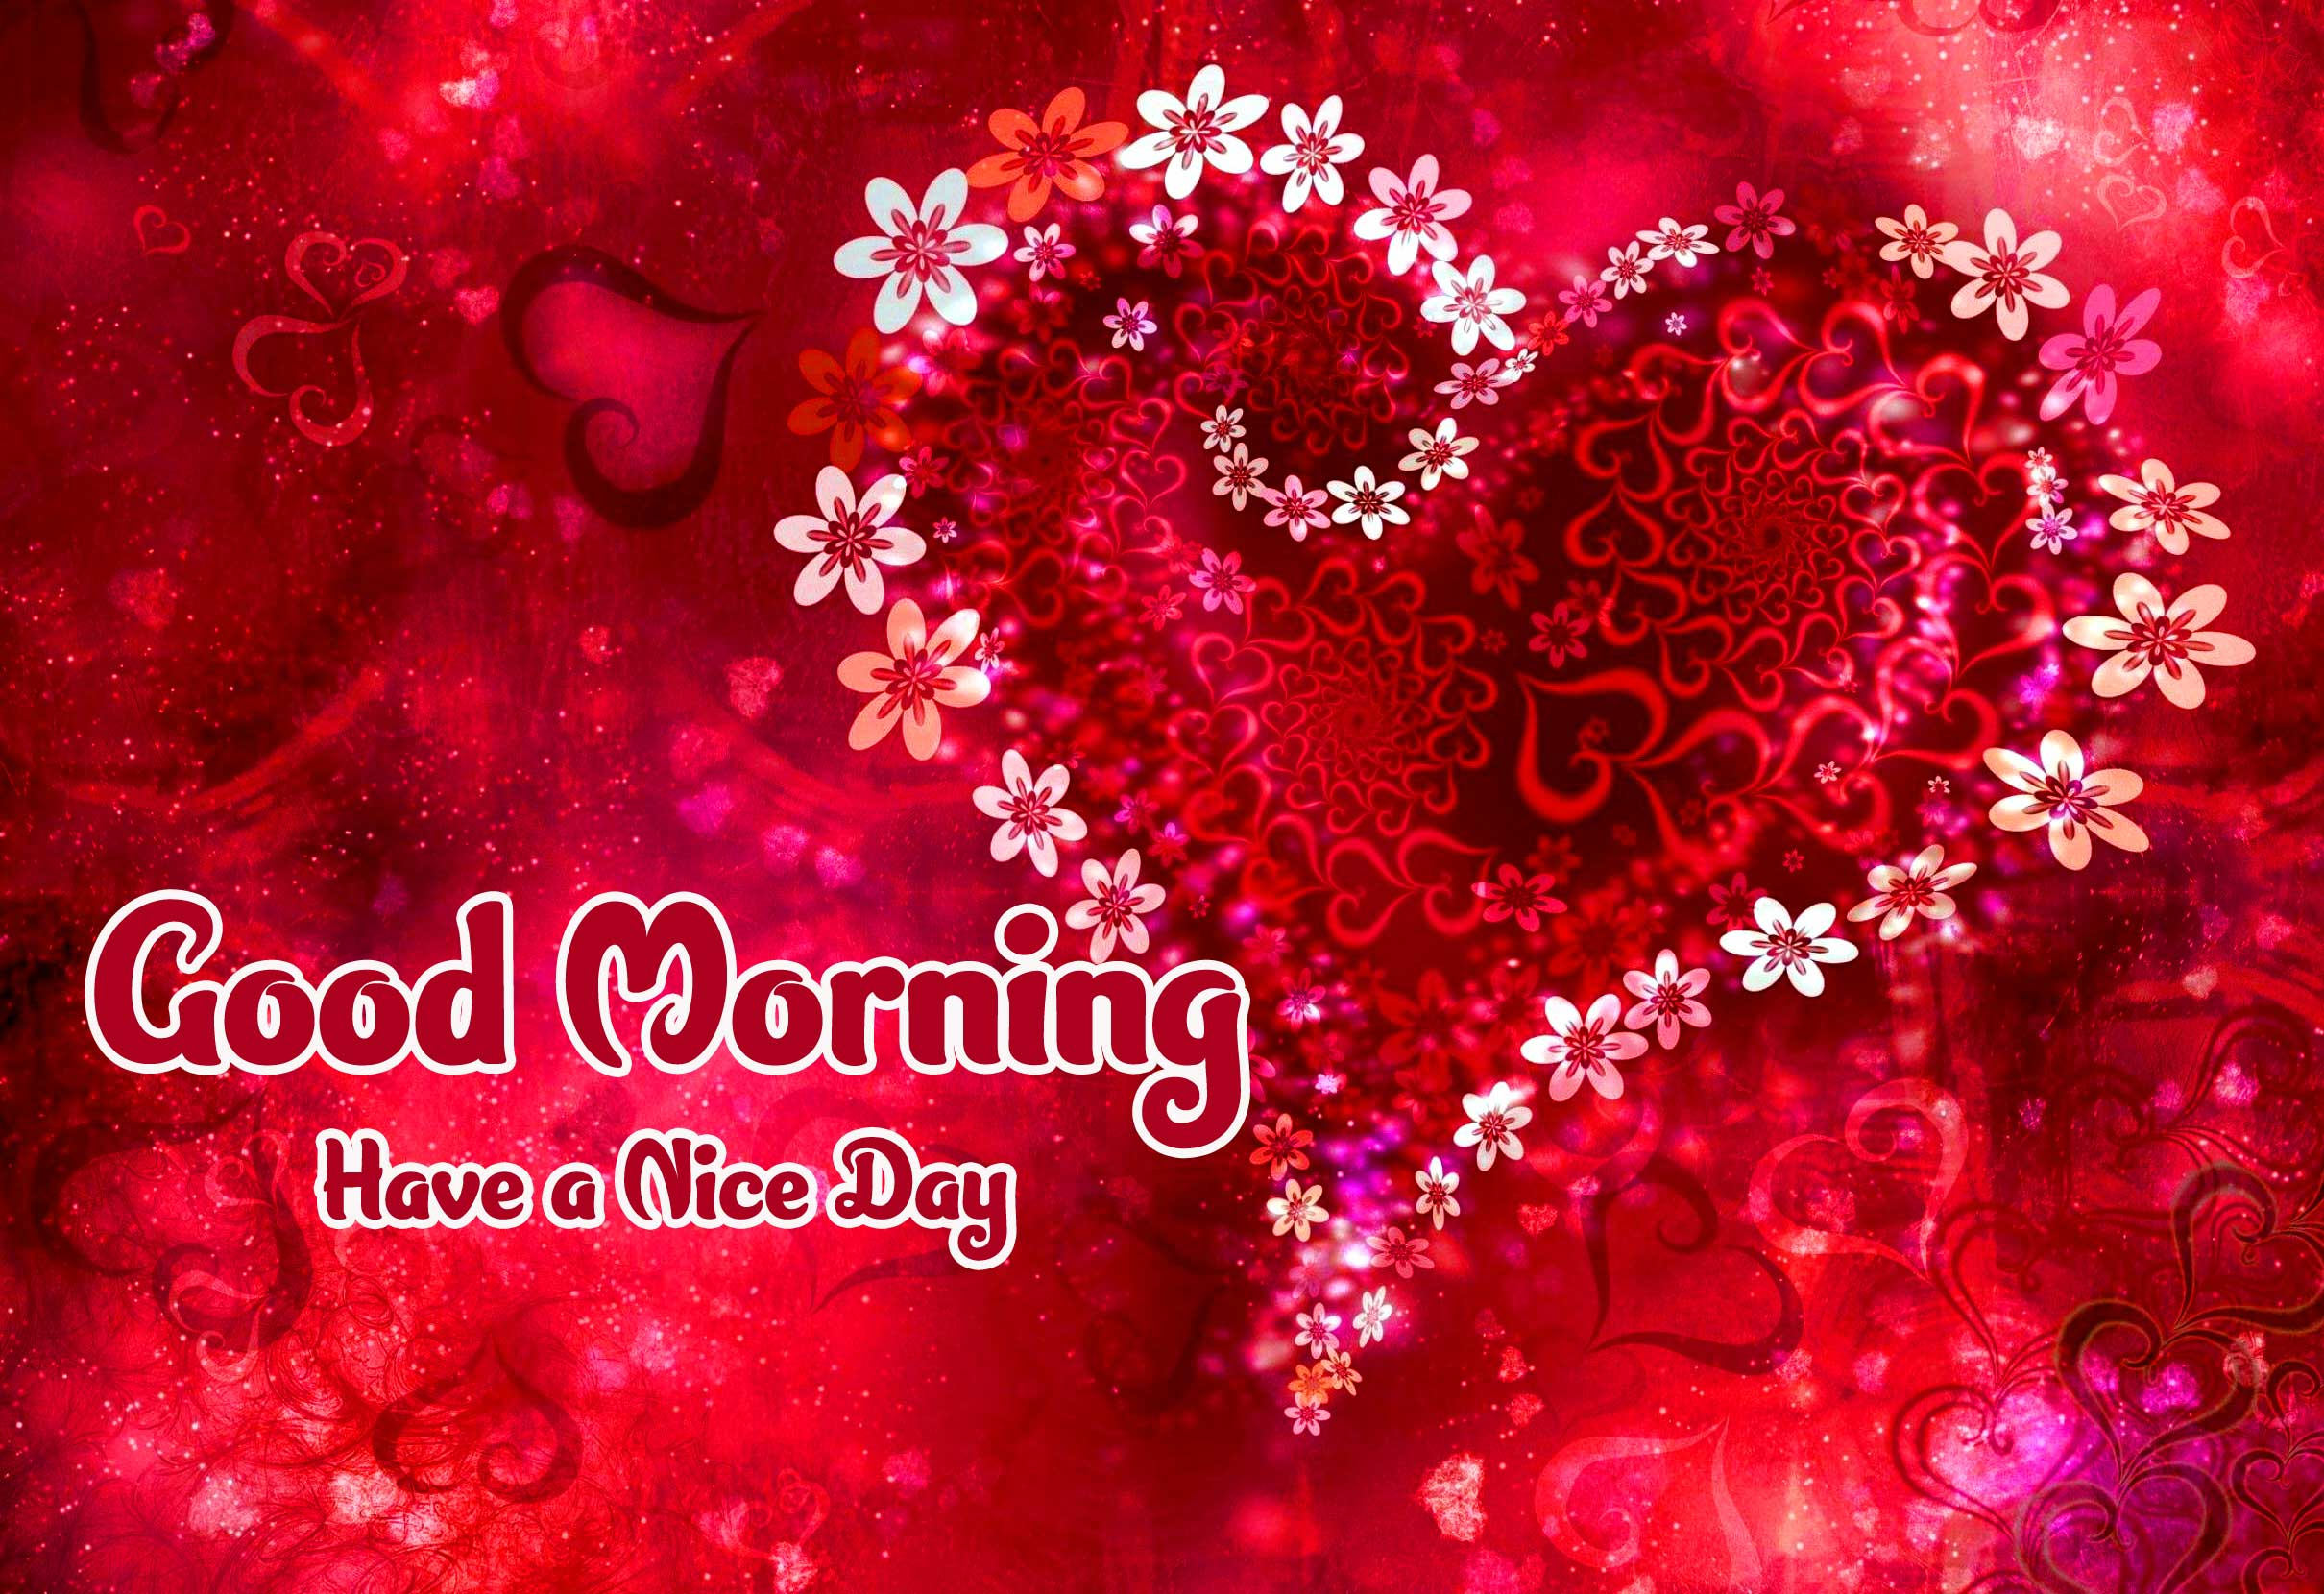 Lover Amazing 1080 p Good Morning 4k ImagesPics Download